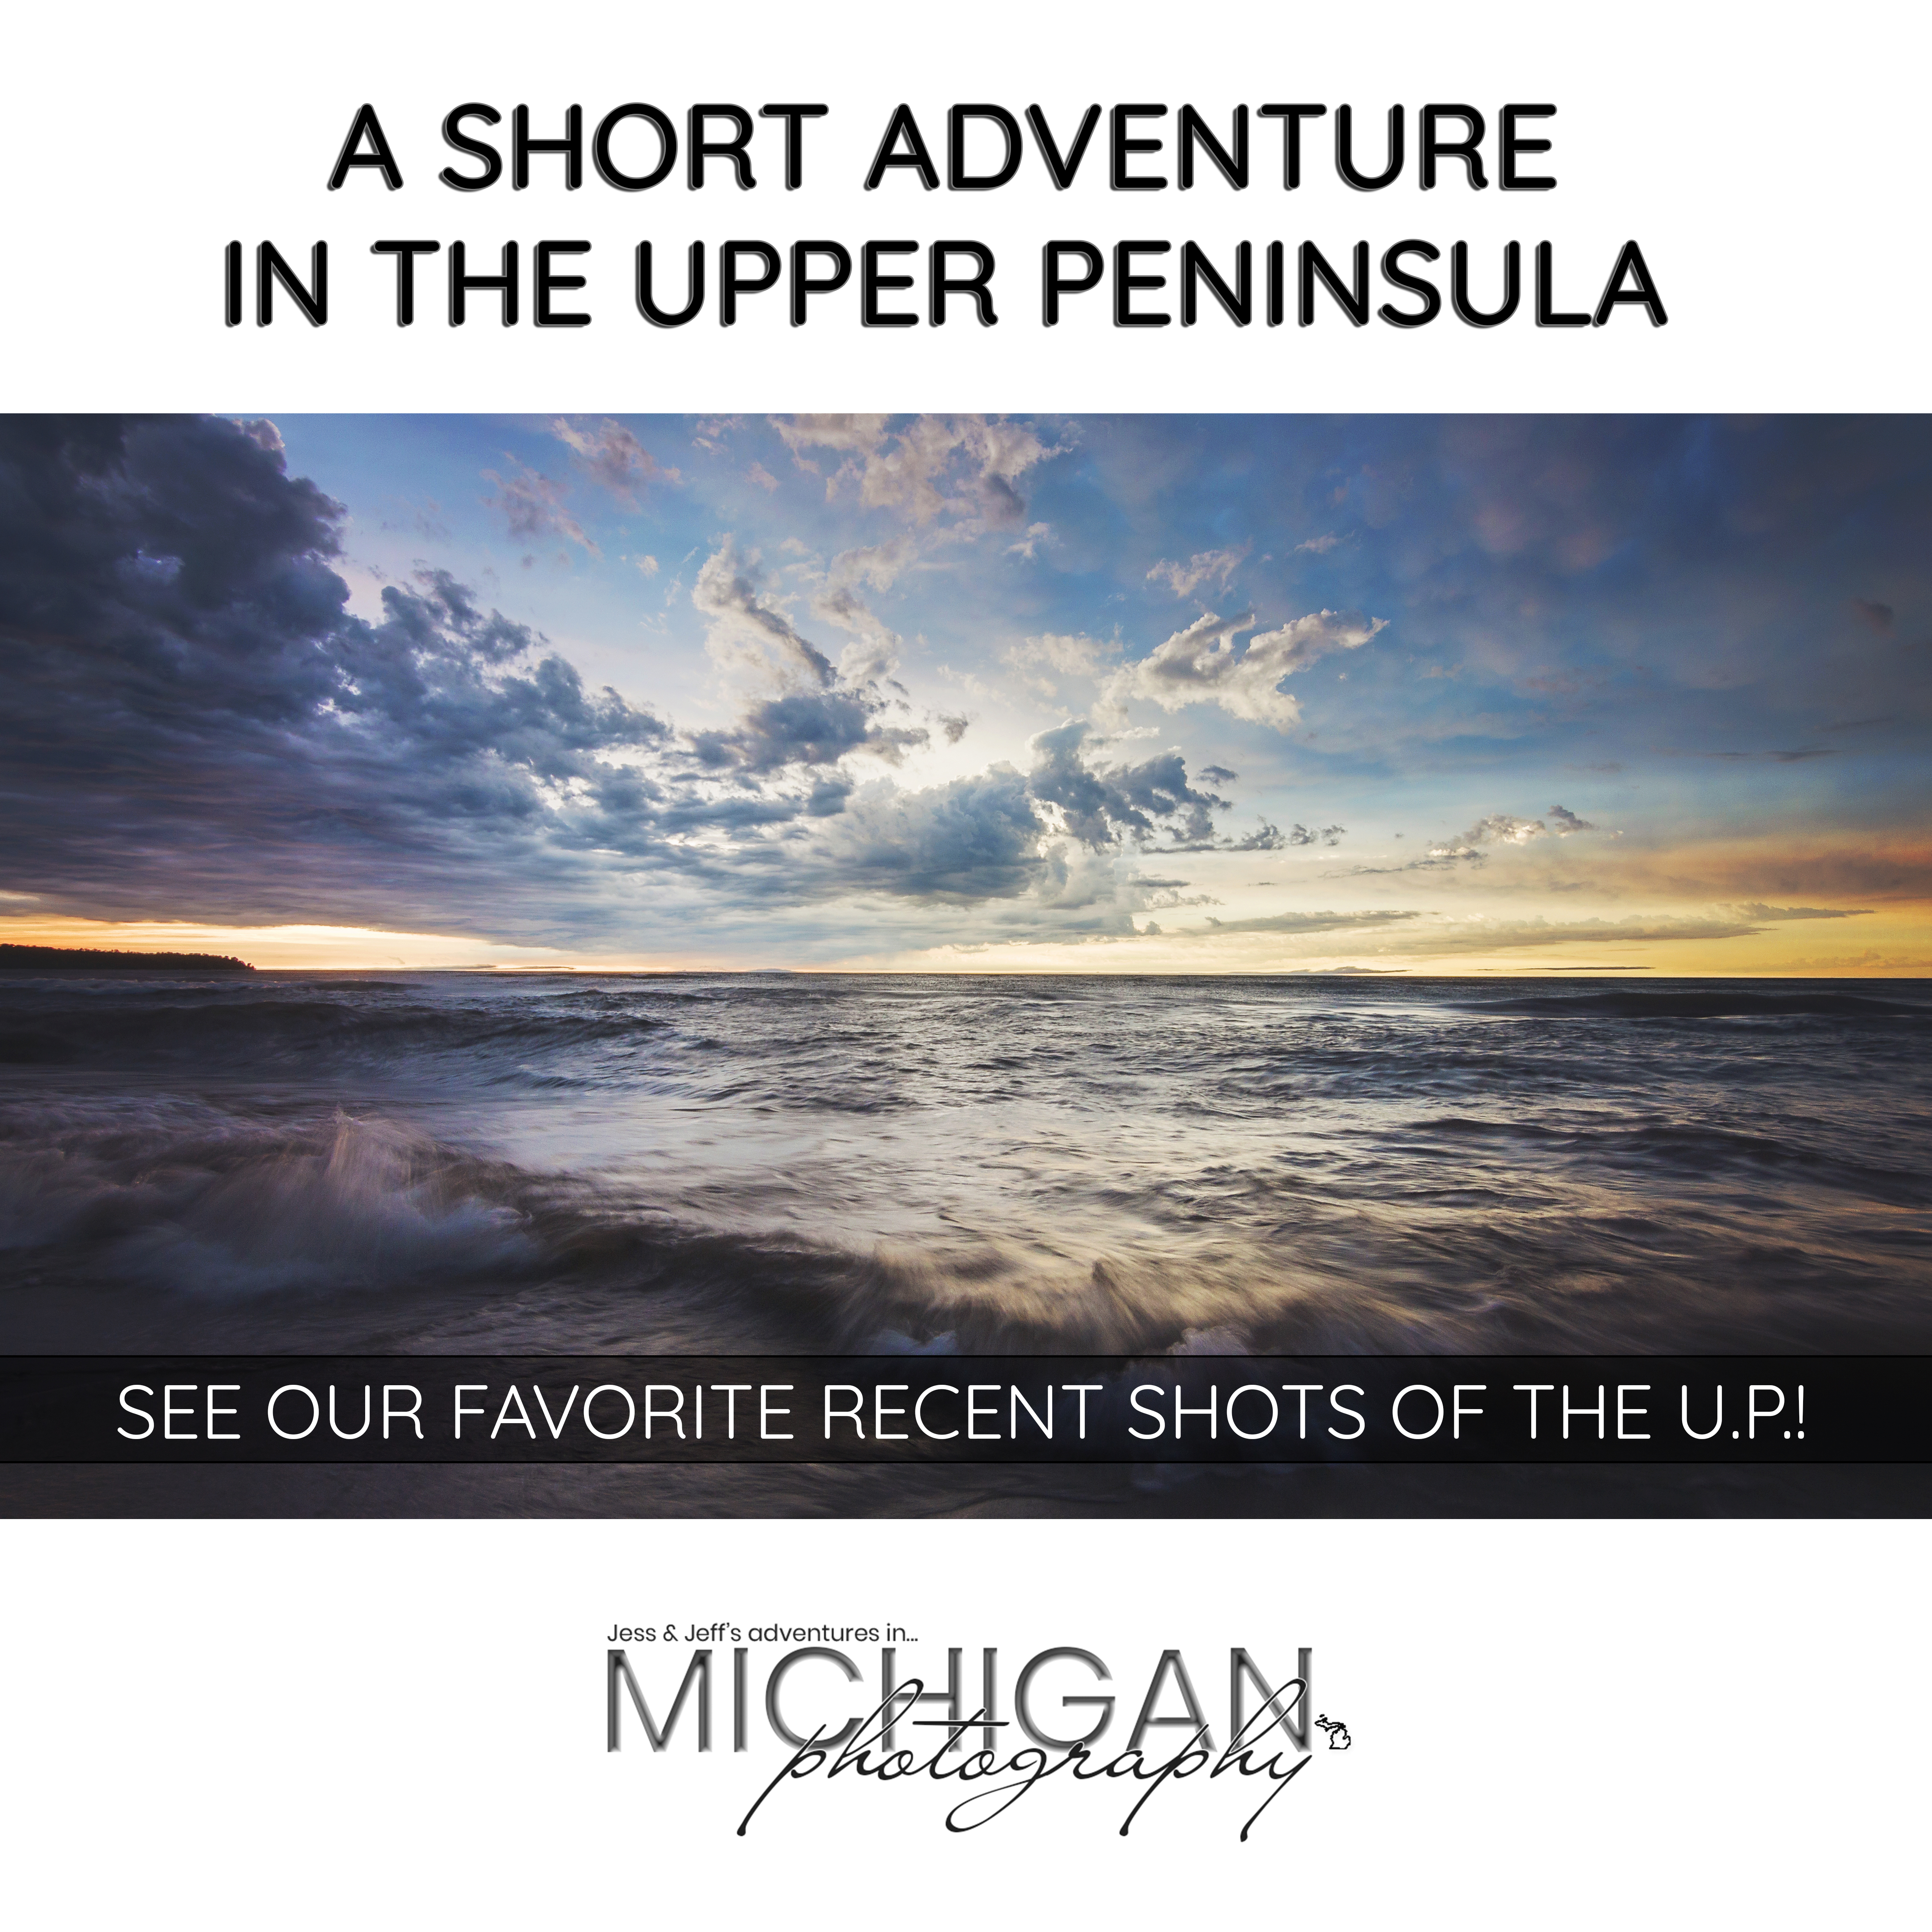 Jess & Jeff share their favorite images from a recent trip to the UP!